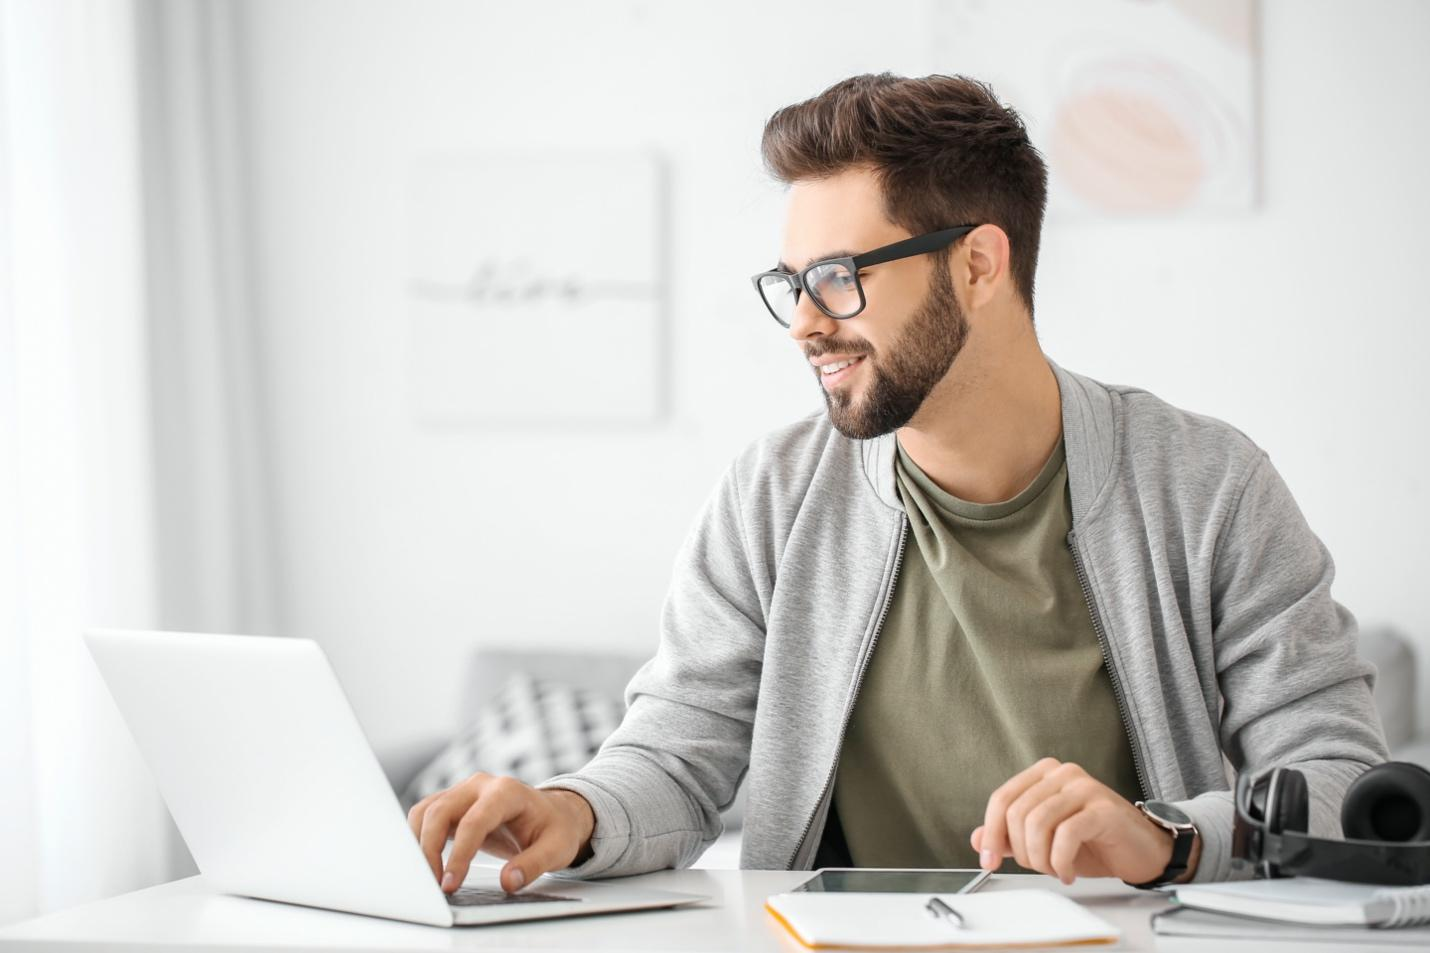 Man with digital skills in front of laptop and iPad.